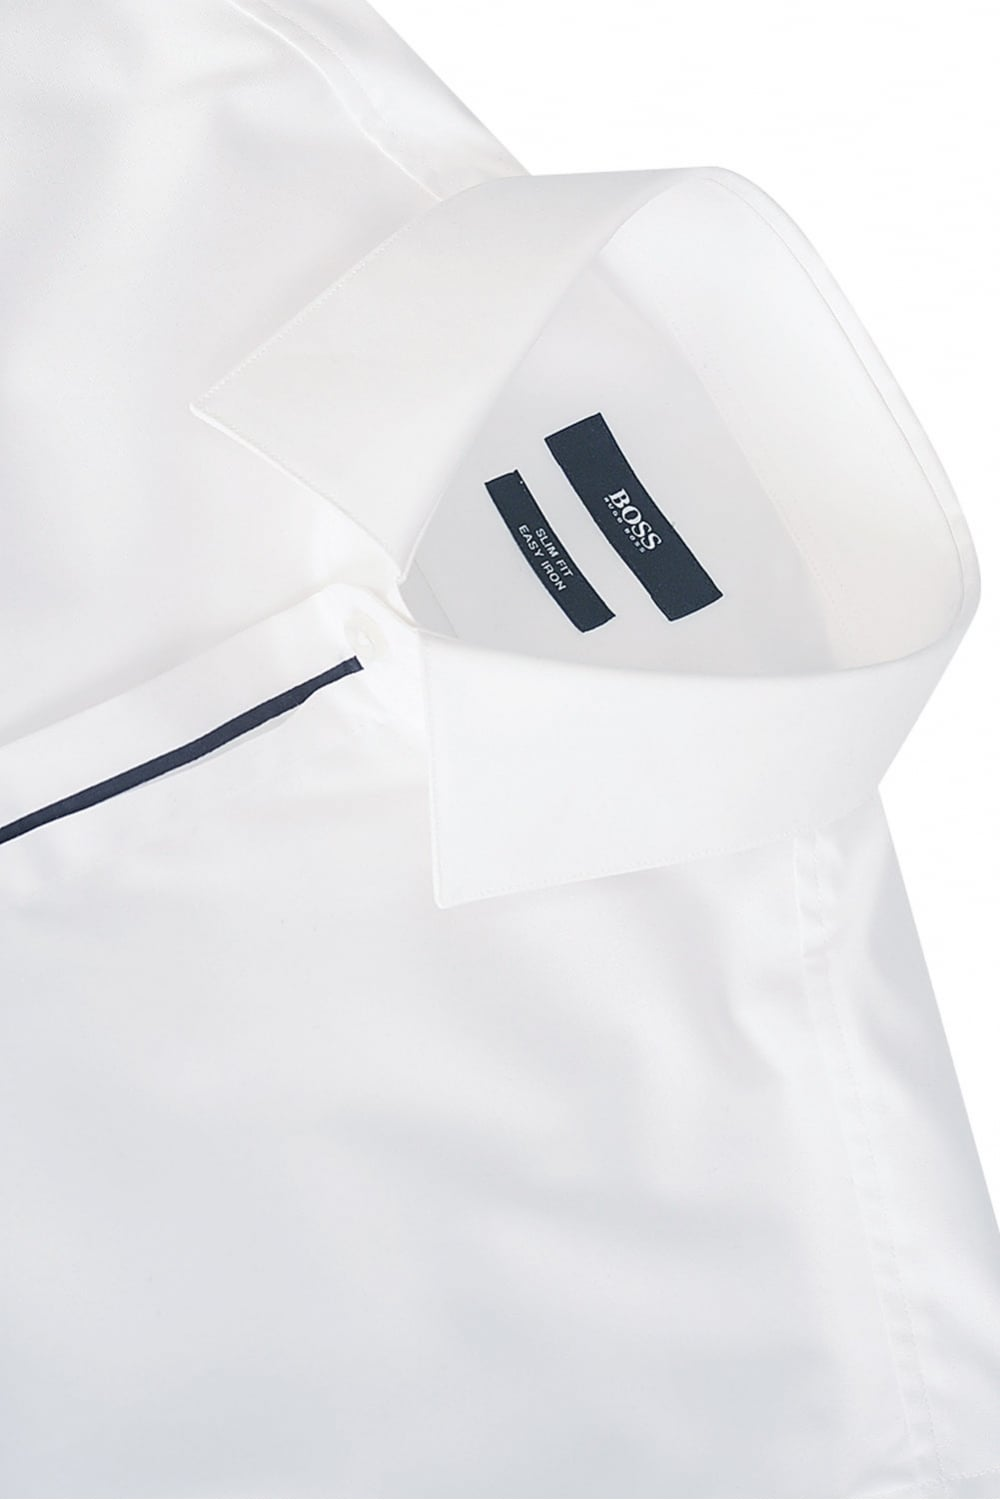 0a339f045 Buy hugo boss white collar shirt - 57% OFF! Share discount